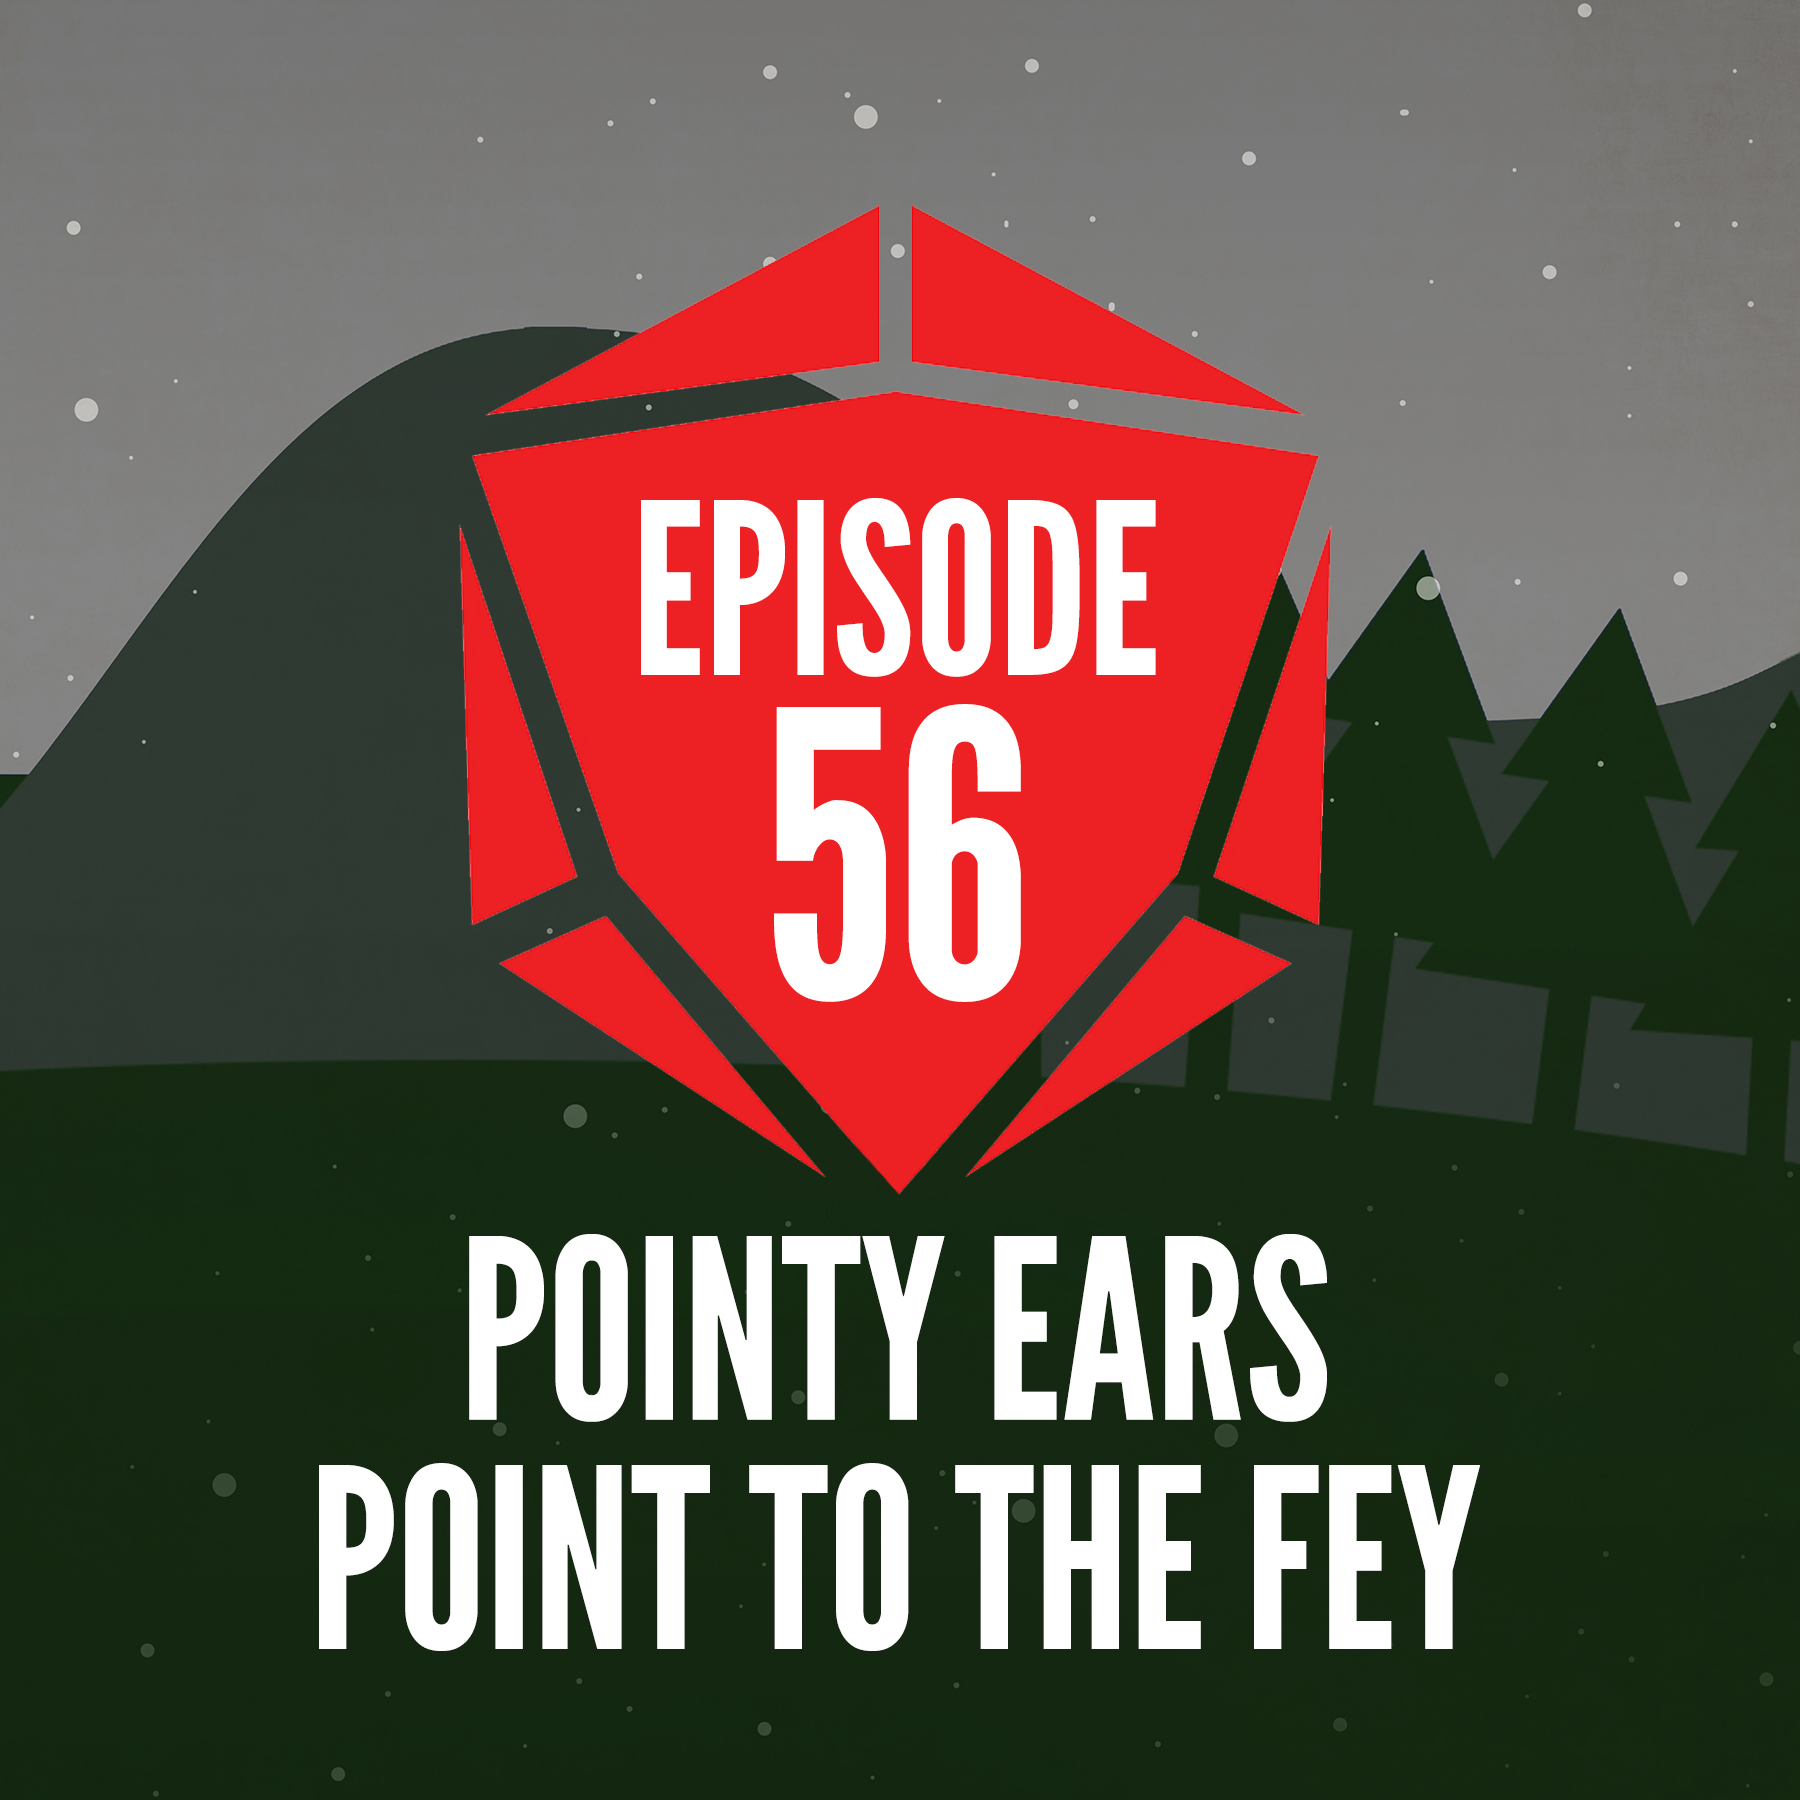 Episode 56: Pointy Ears Point to the Fey